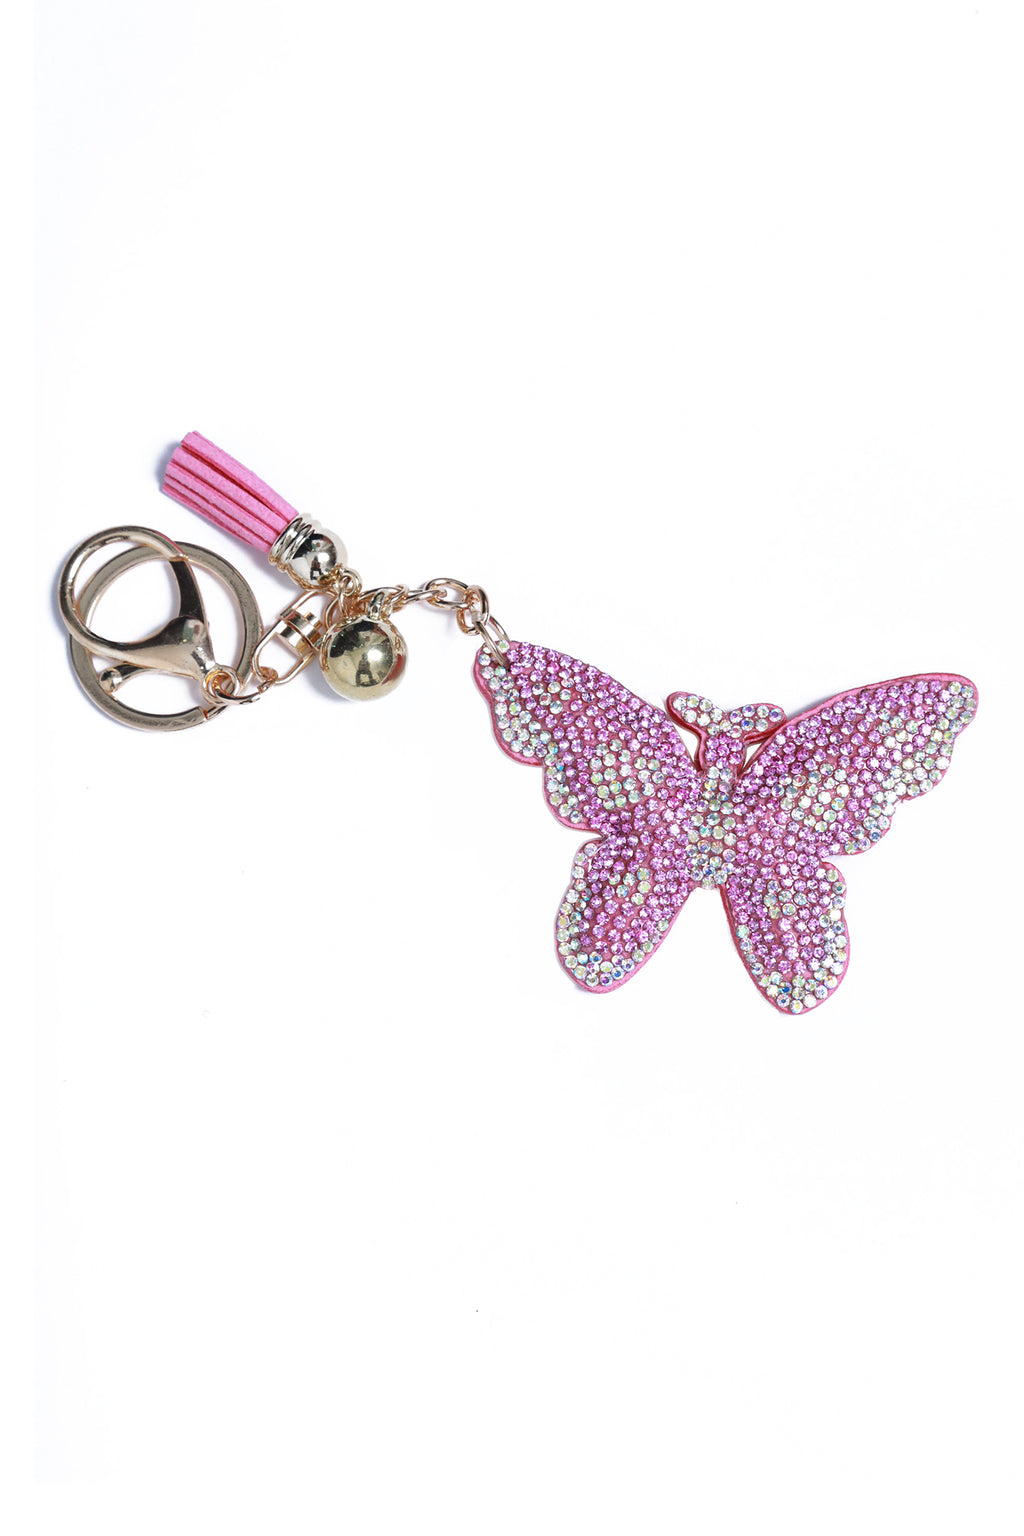 Rhinestone Key Chain Butterfly